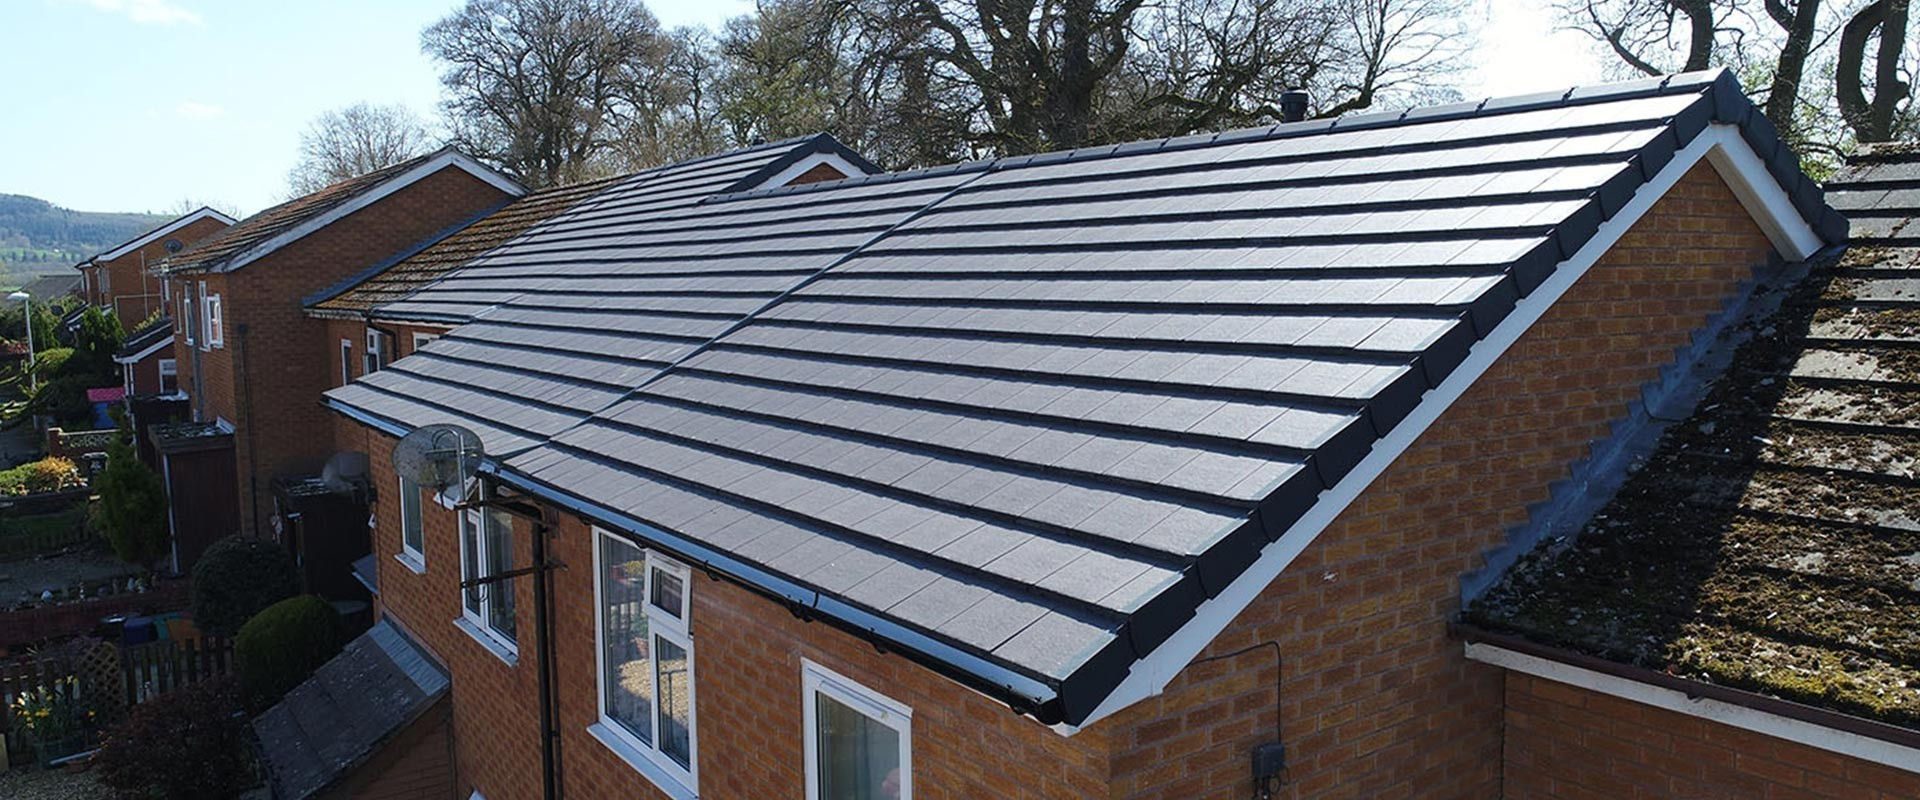 Re-roofing Framework Contract